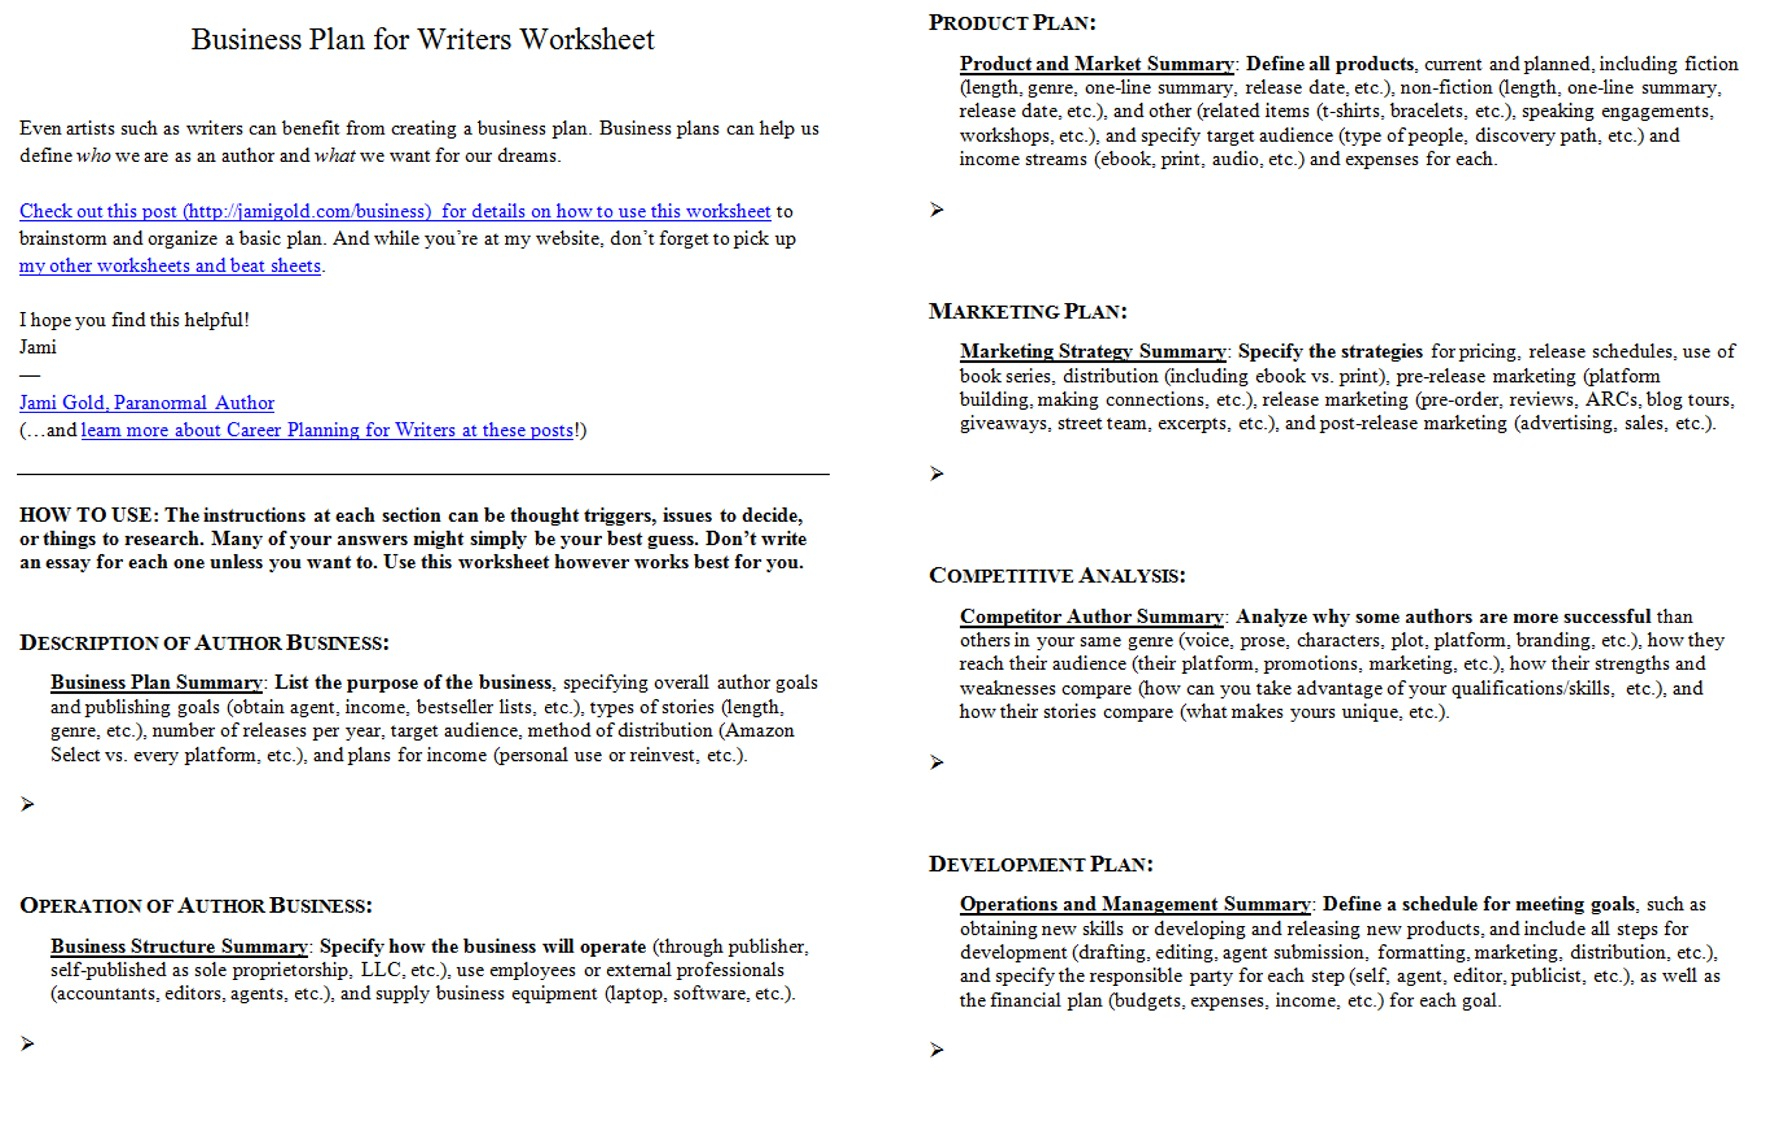 Aldiablosus  Nice Worksheets For Writers  Jami Gold Paranormal Author With Remarkable Screen Shot Of Both Pages Of The Business Plan For Writers Worksheet With Awesome Skip Counting By  Worksheets For Kindergarten Also Excel Vba Save Worksheet In Addition Singular Plural Worksheets For Grade  And Kinds Of Sentences Worksheet Grade  As Well As Kindergarten Multiplication Worksheets Additionally School Rules Worksheet From Jamigoldcom With Aldiablosus  Remarkable Worksheets For Writers  Jami Gold Paranormal Author With Awesome Screen Shot Of Both Pages Of The Business Plan For Writers Worksheet And Nice Skip Counting By  Worksheets For Kindergarten Also Excel Vba Save Worksheet In Addition Singular Plural Worksheets For Grade  From Jamigoldcom